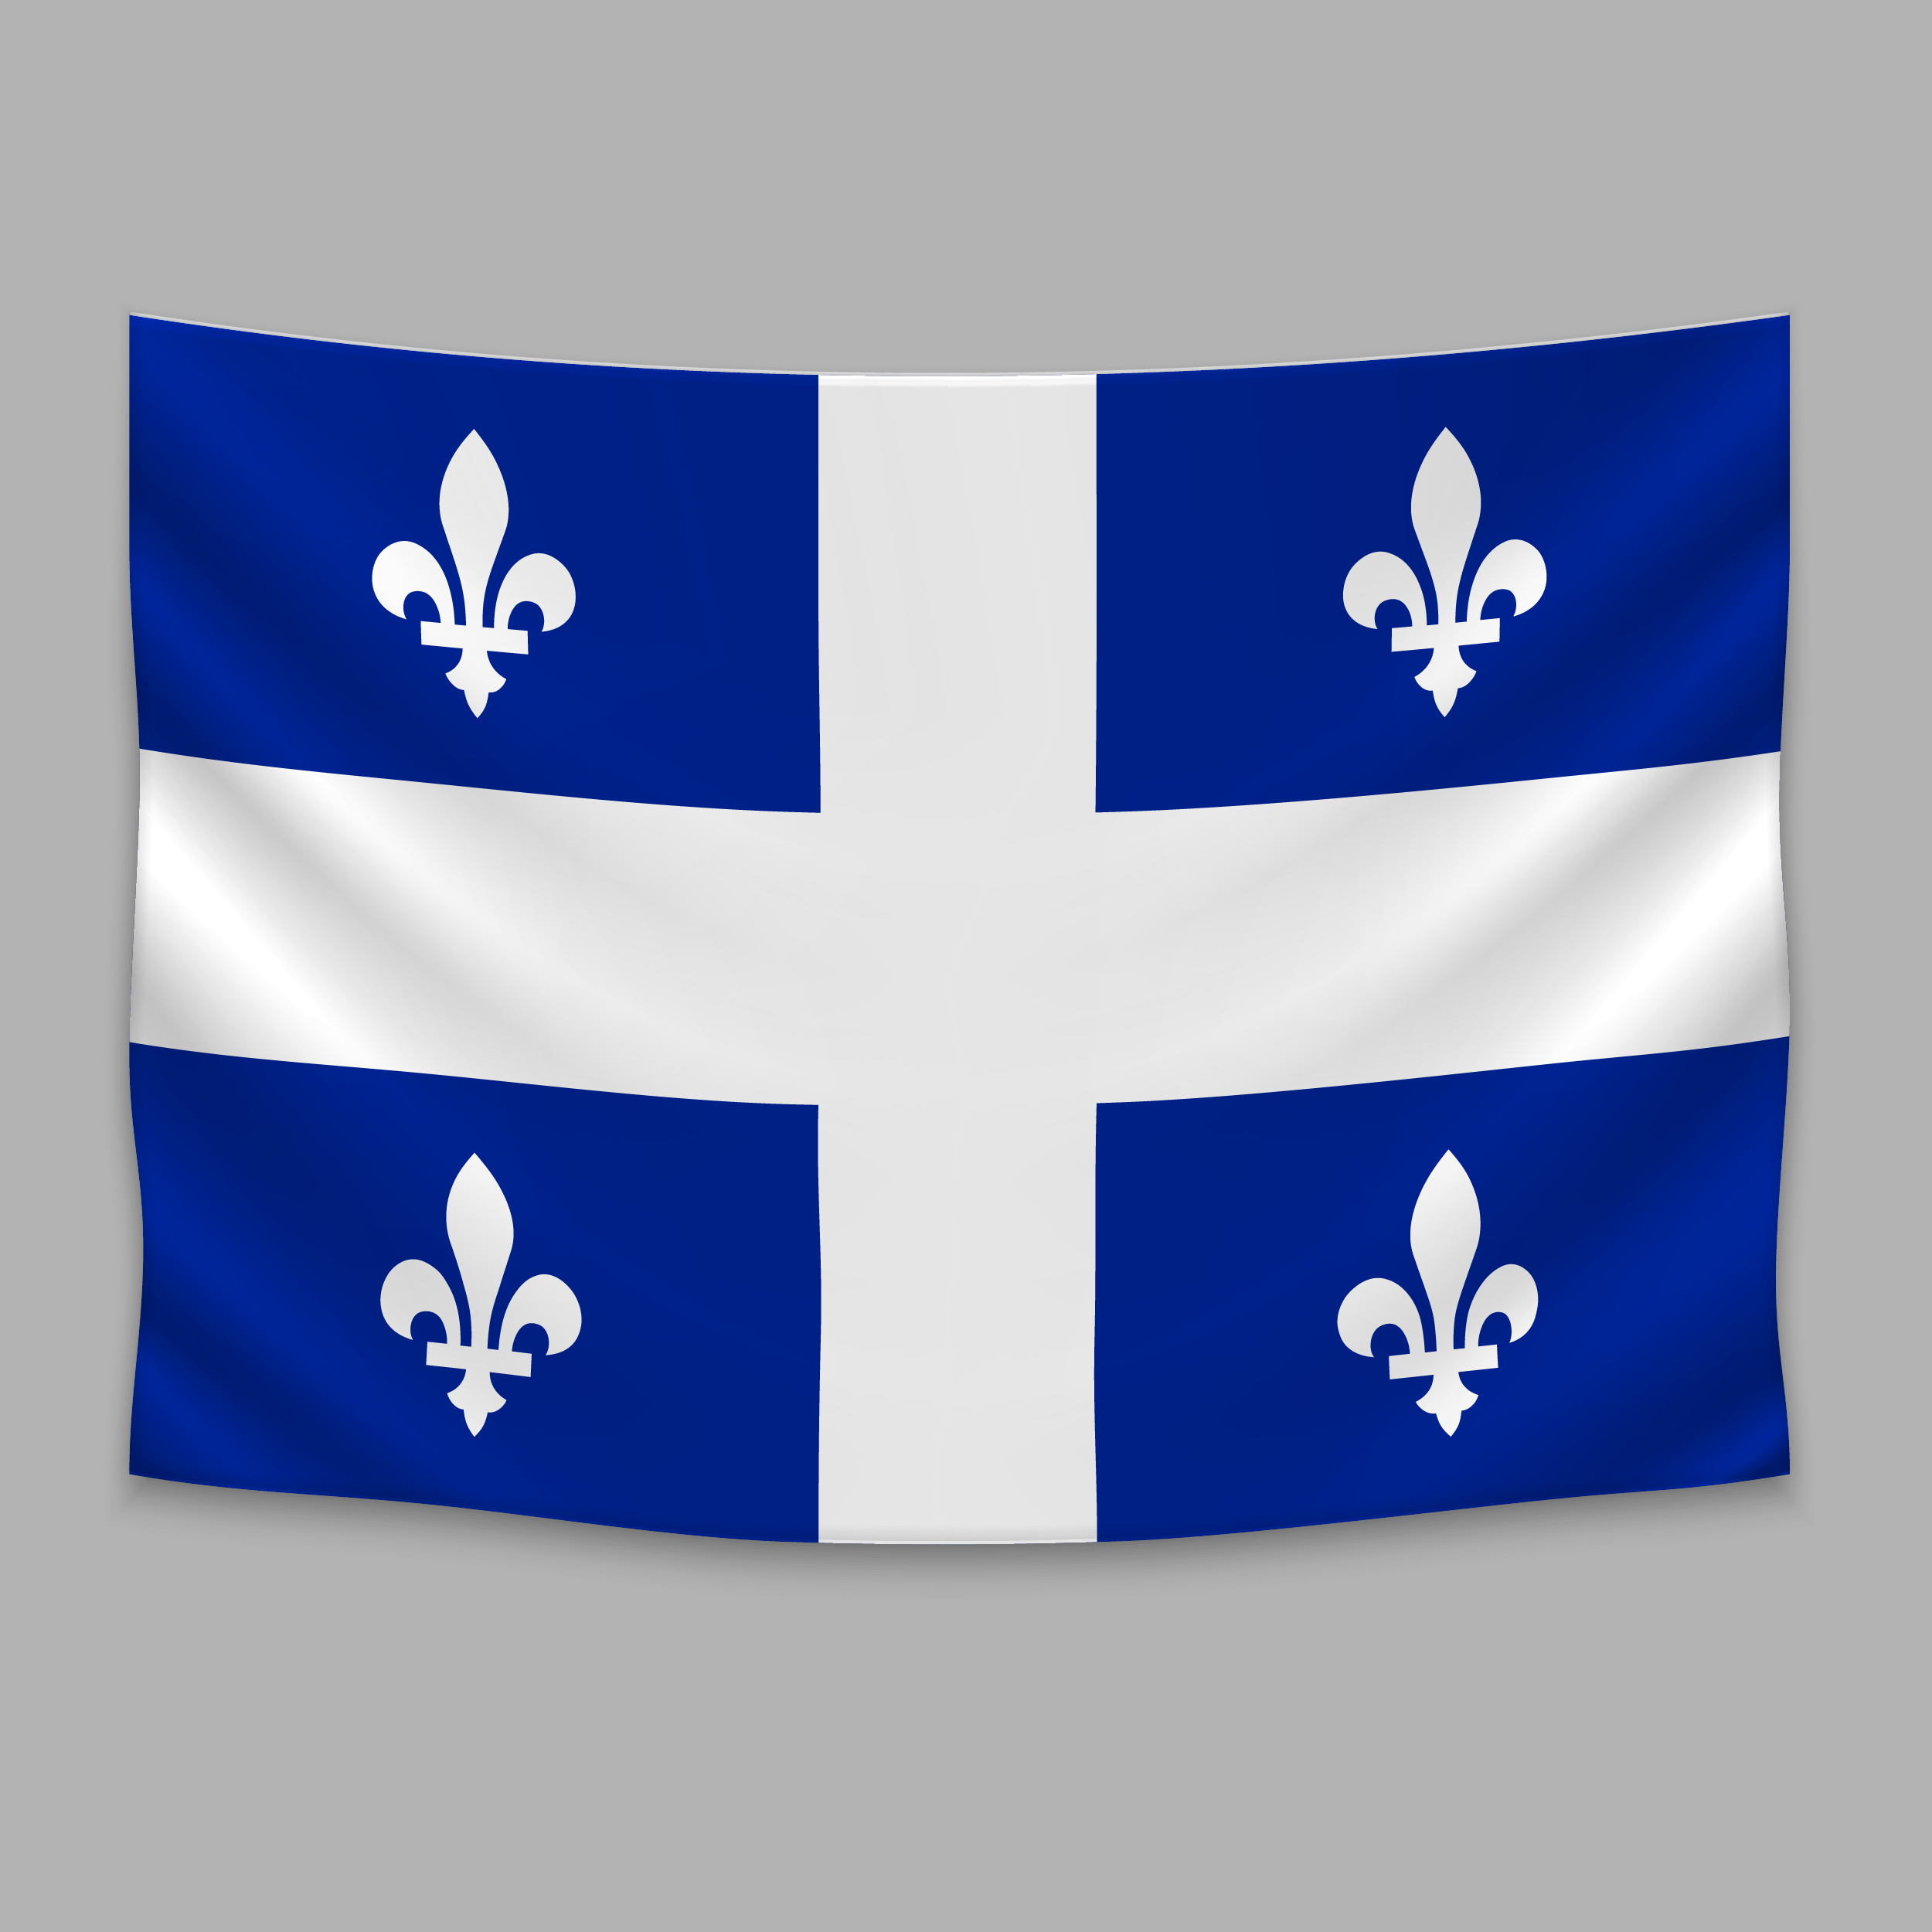 In 2021 Quebec could welcome between 44,500 and 47,500 immigrants